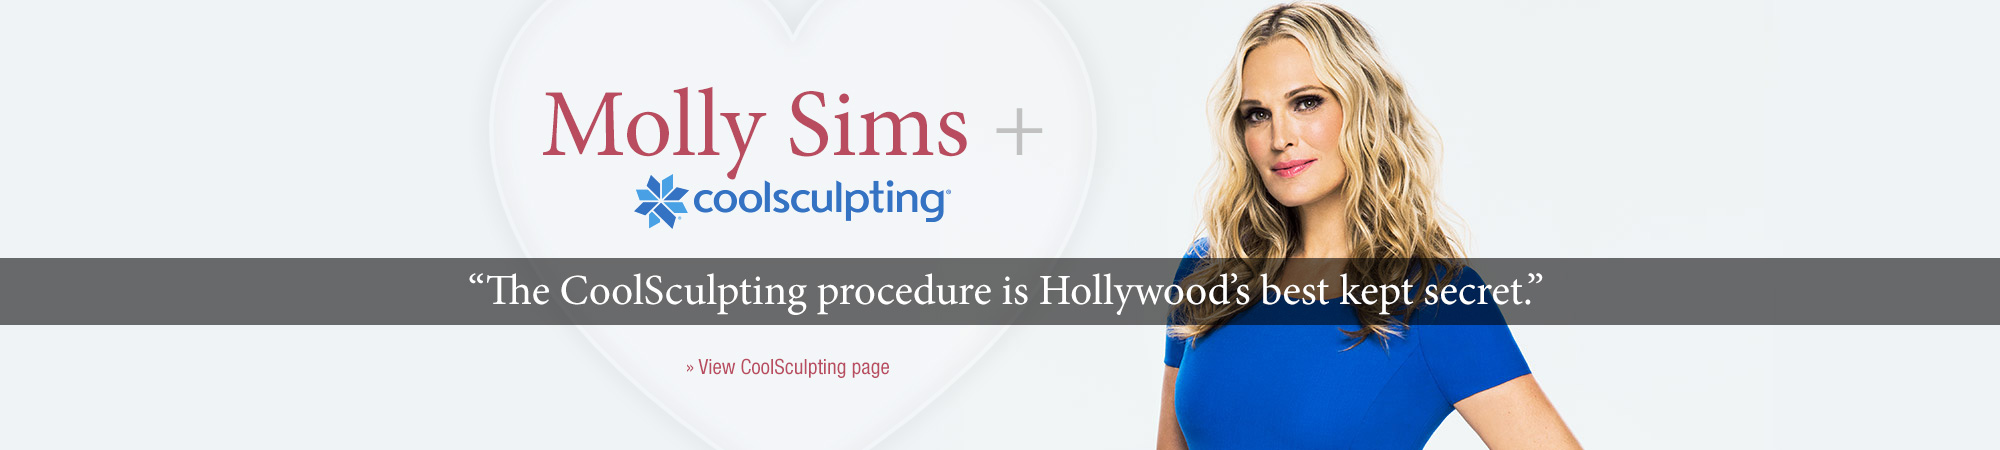 CoolSculpting celebrity beauty